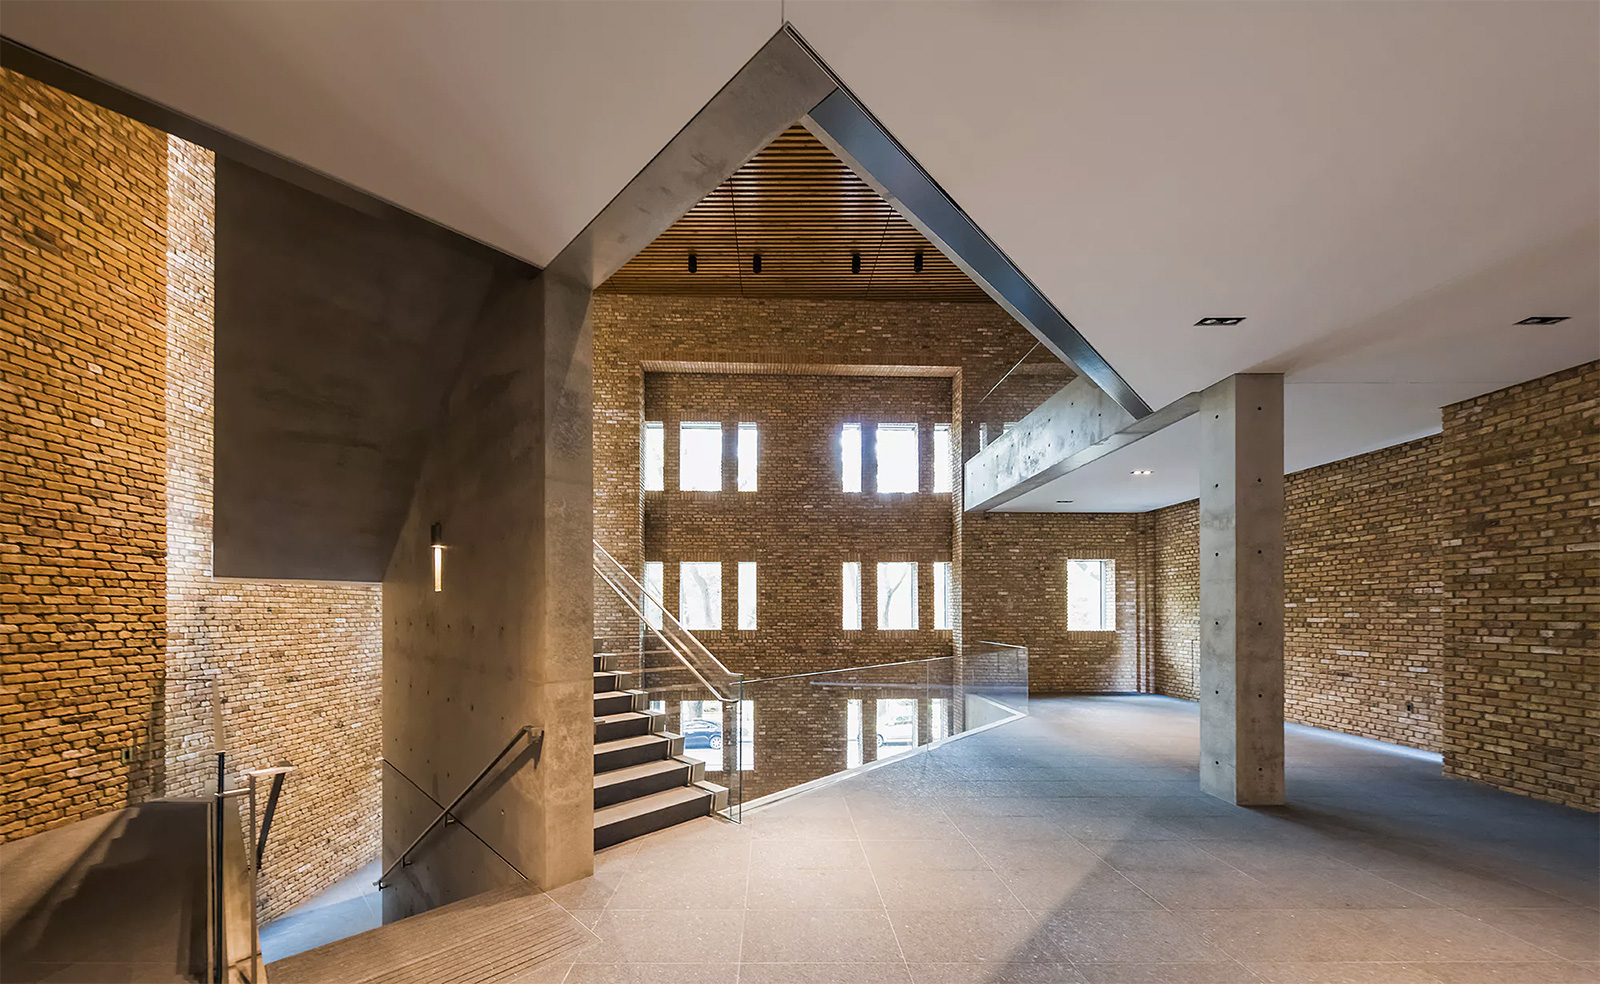 Wrightwood 659 in Chicago - adaptive reuse project by Tadao Ando